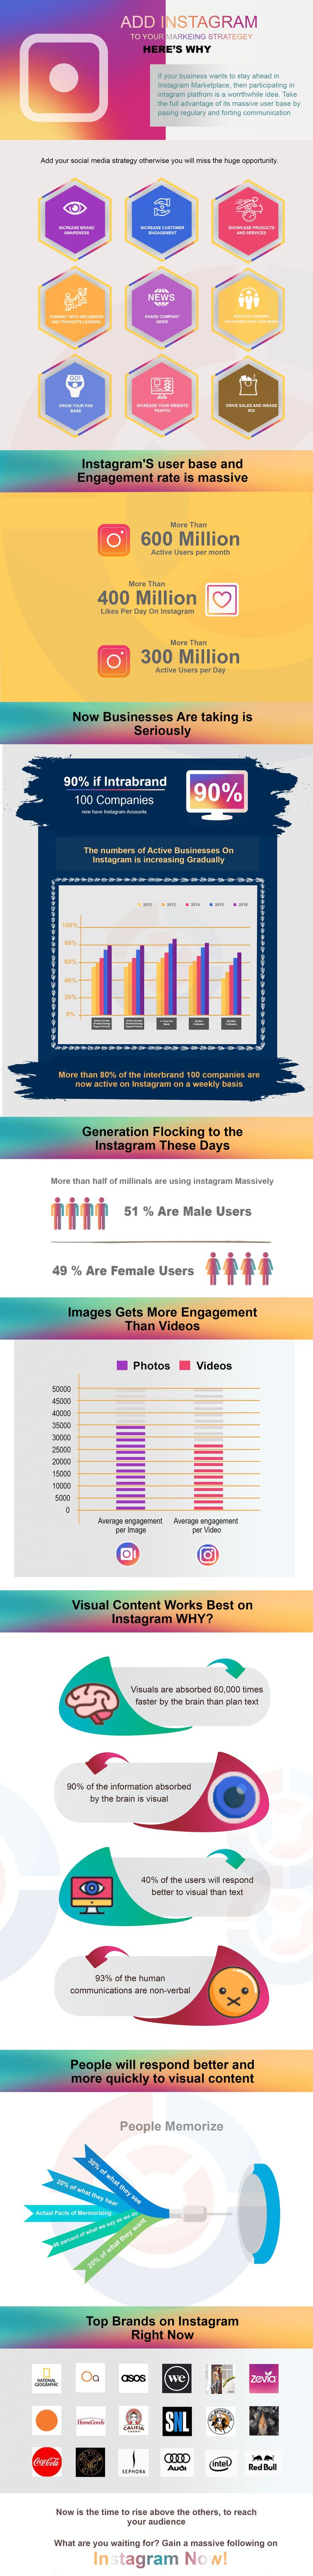 Marketing-Infographic-Infographic-Add-Instagram-to-your-MarketingStrategy.-If-your-business-wants Marketing Infographic : Infographic: Add #Instagram to your #MarketingStrategy.  If your business wants ...